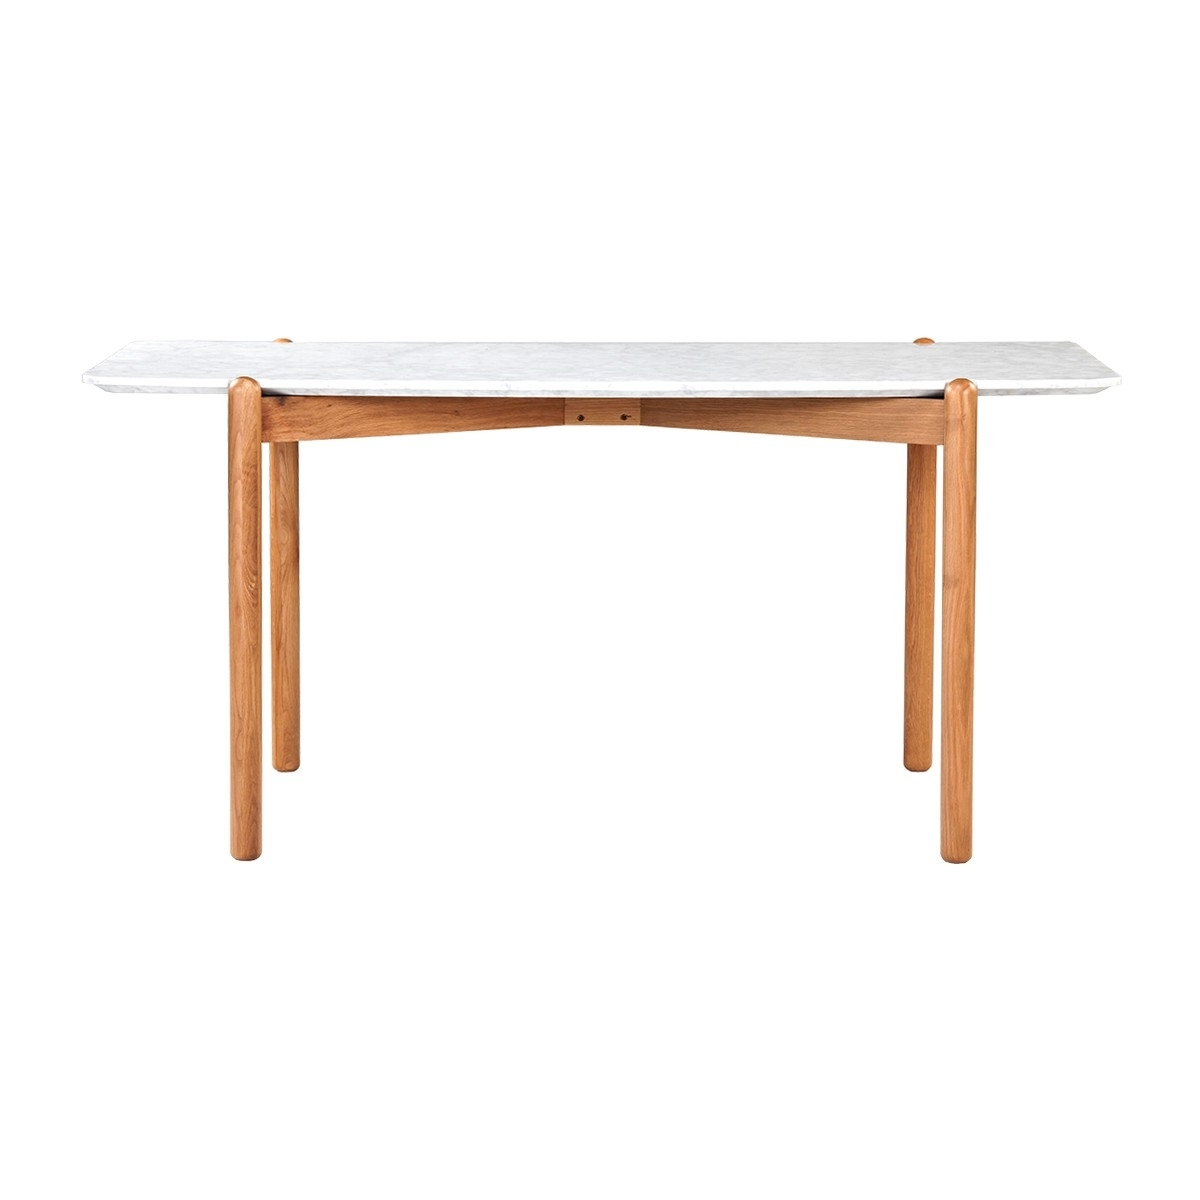 Most Recent Nora Dining Tables Pertaining To Life Interiors – Norah Marble Dining Table (Oak) – Modern Dining (View 19 of 25)